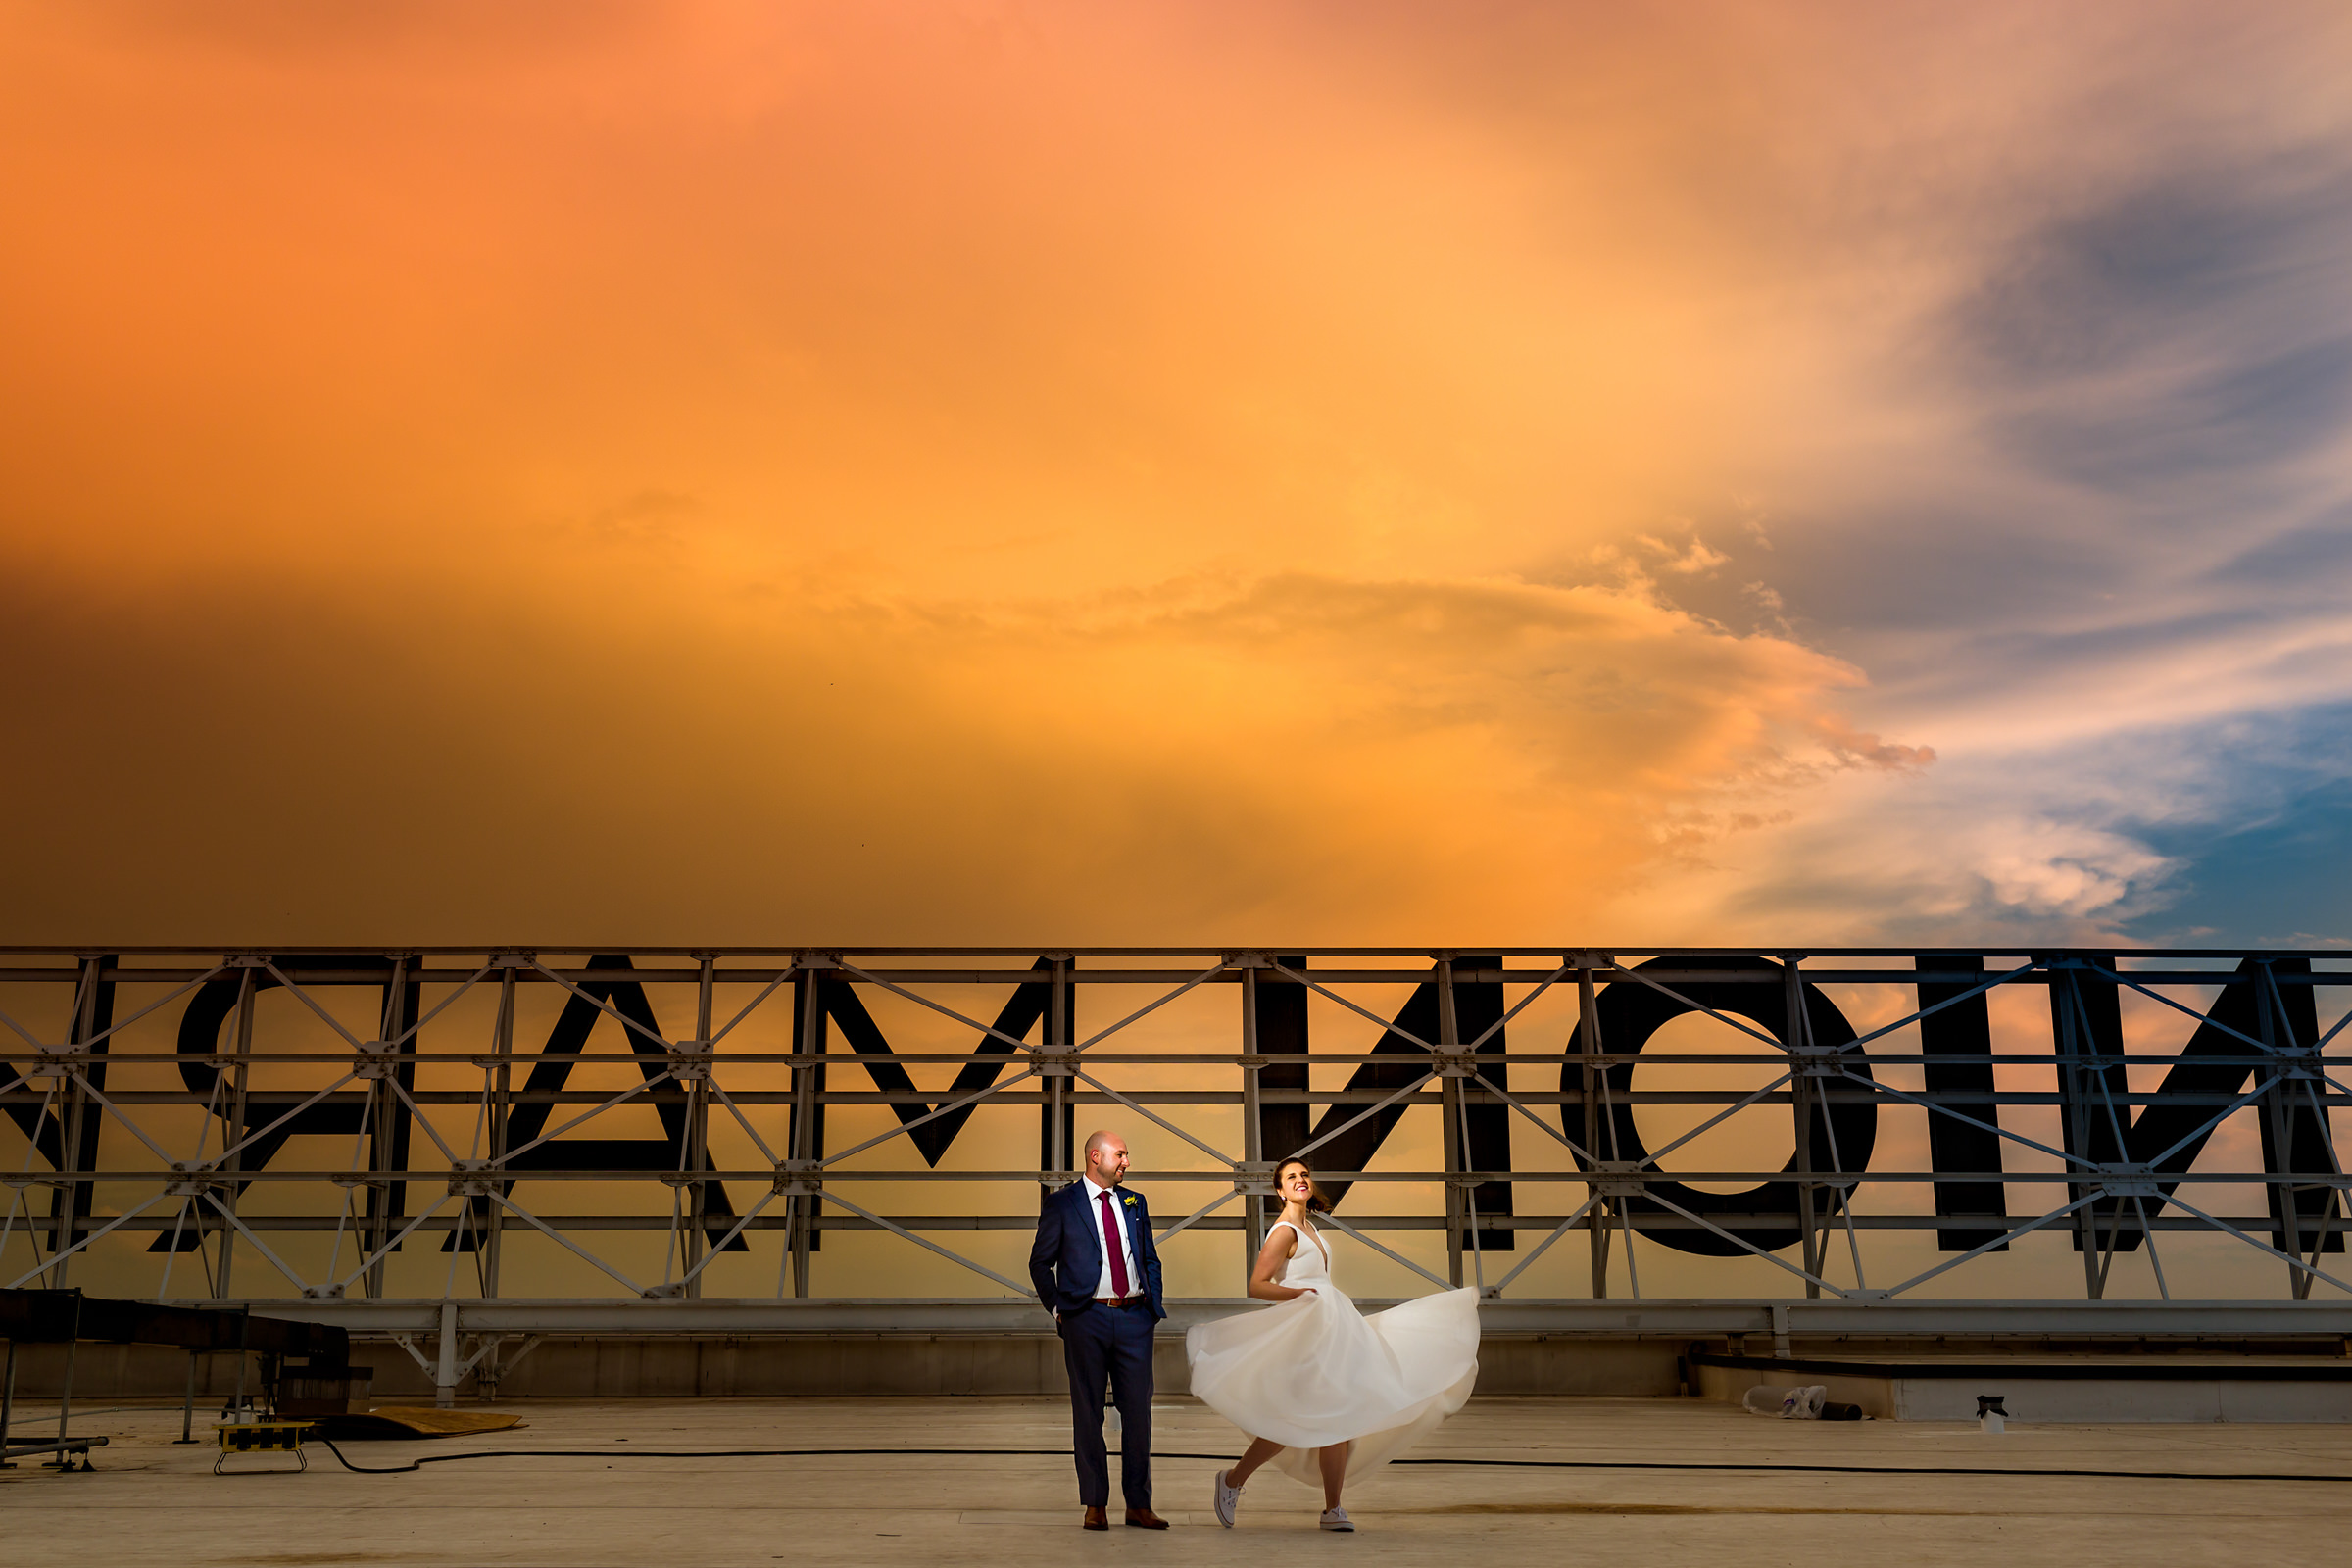 Couple against huge outdoor sign at sunset - photo by Procopio Photography